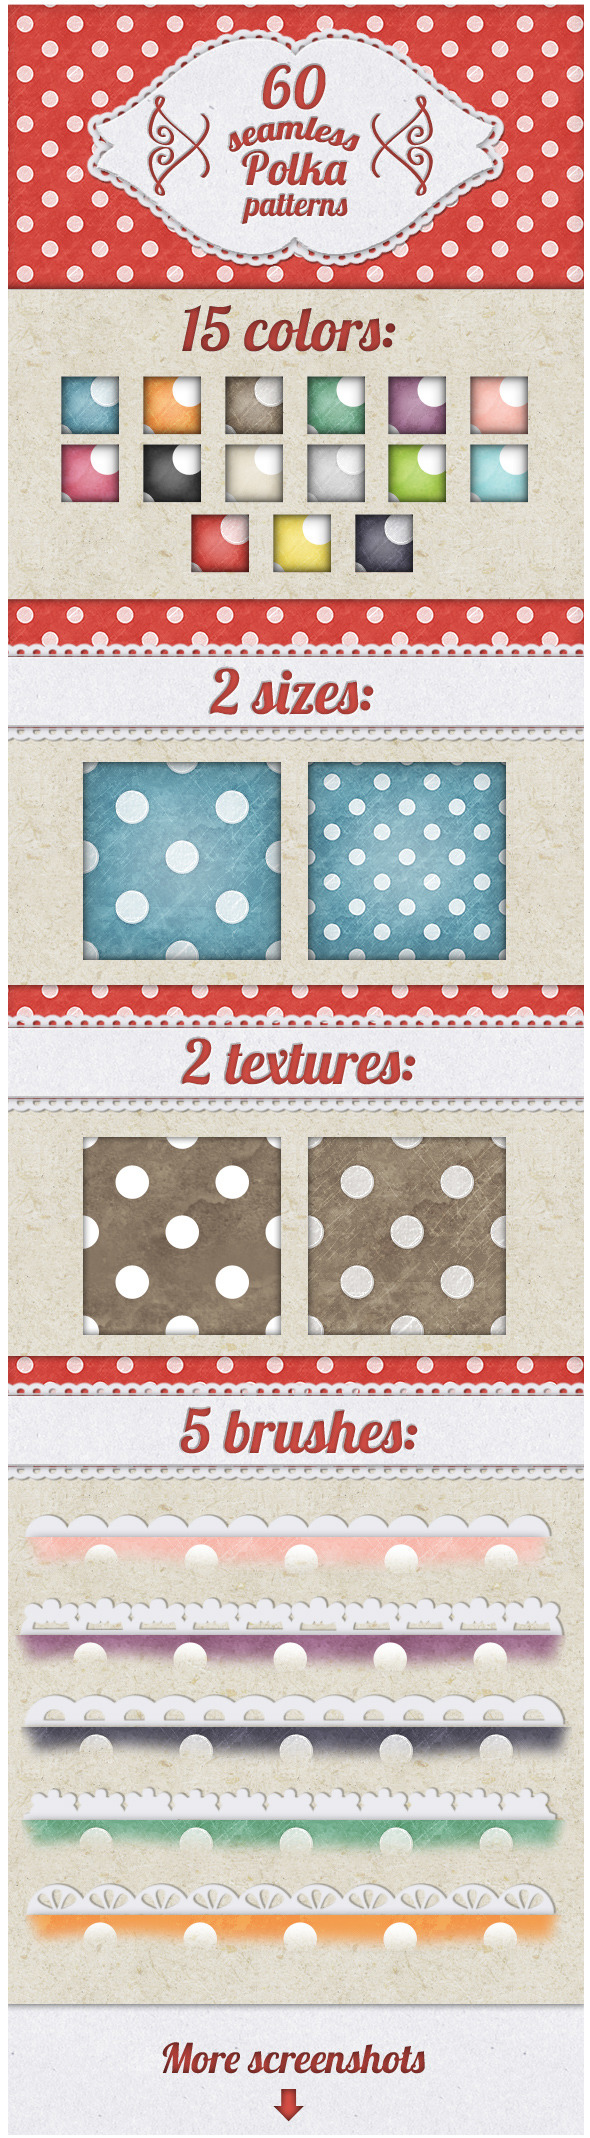 Vintage Polka Dots Patterns for Photoshop - Abstract Textures / Fills / Patterns